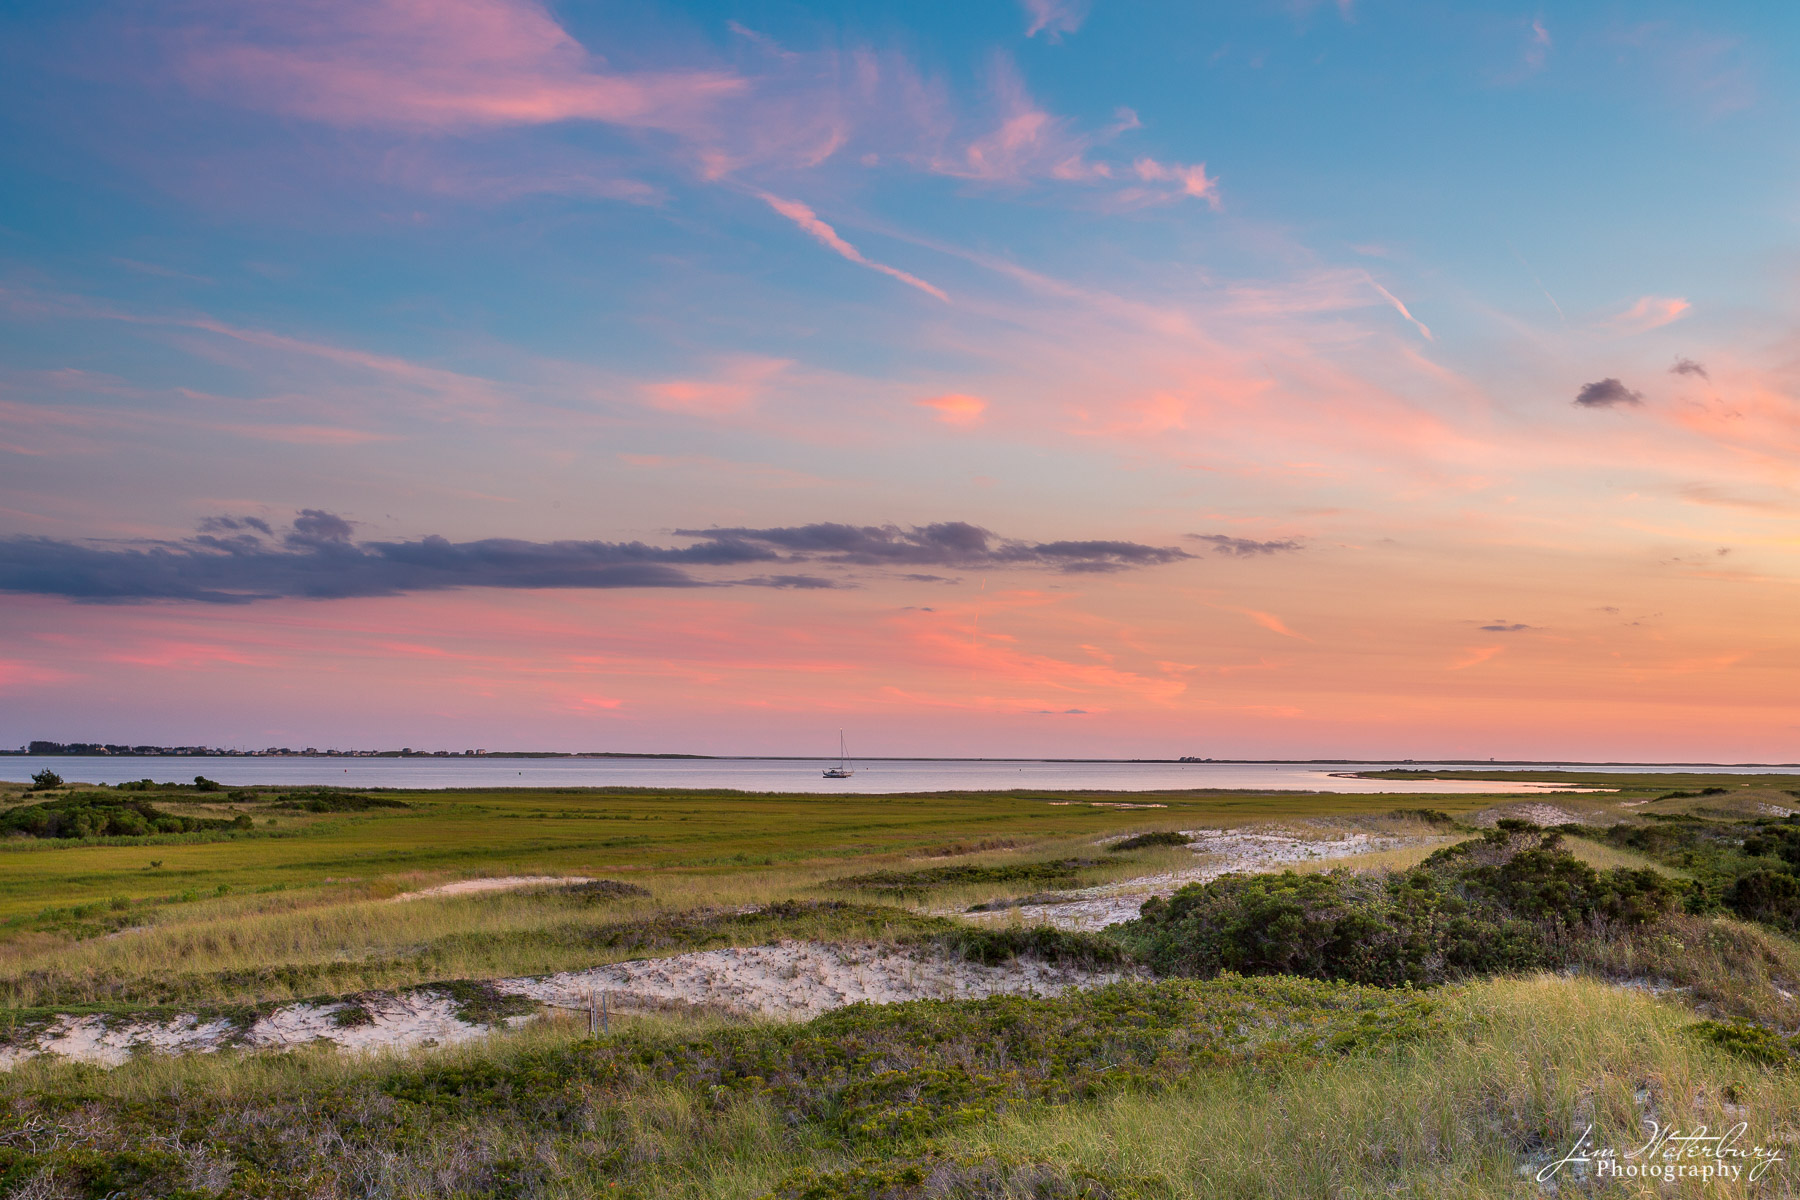 A late summer sunset reflects pink light into the clouds over Nantucket Sound, as seen from atop the sand dunes on Eel Point.